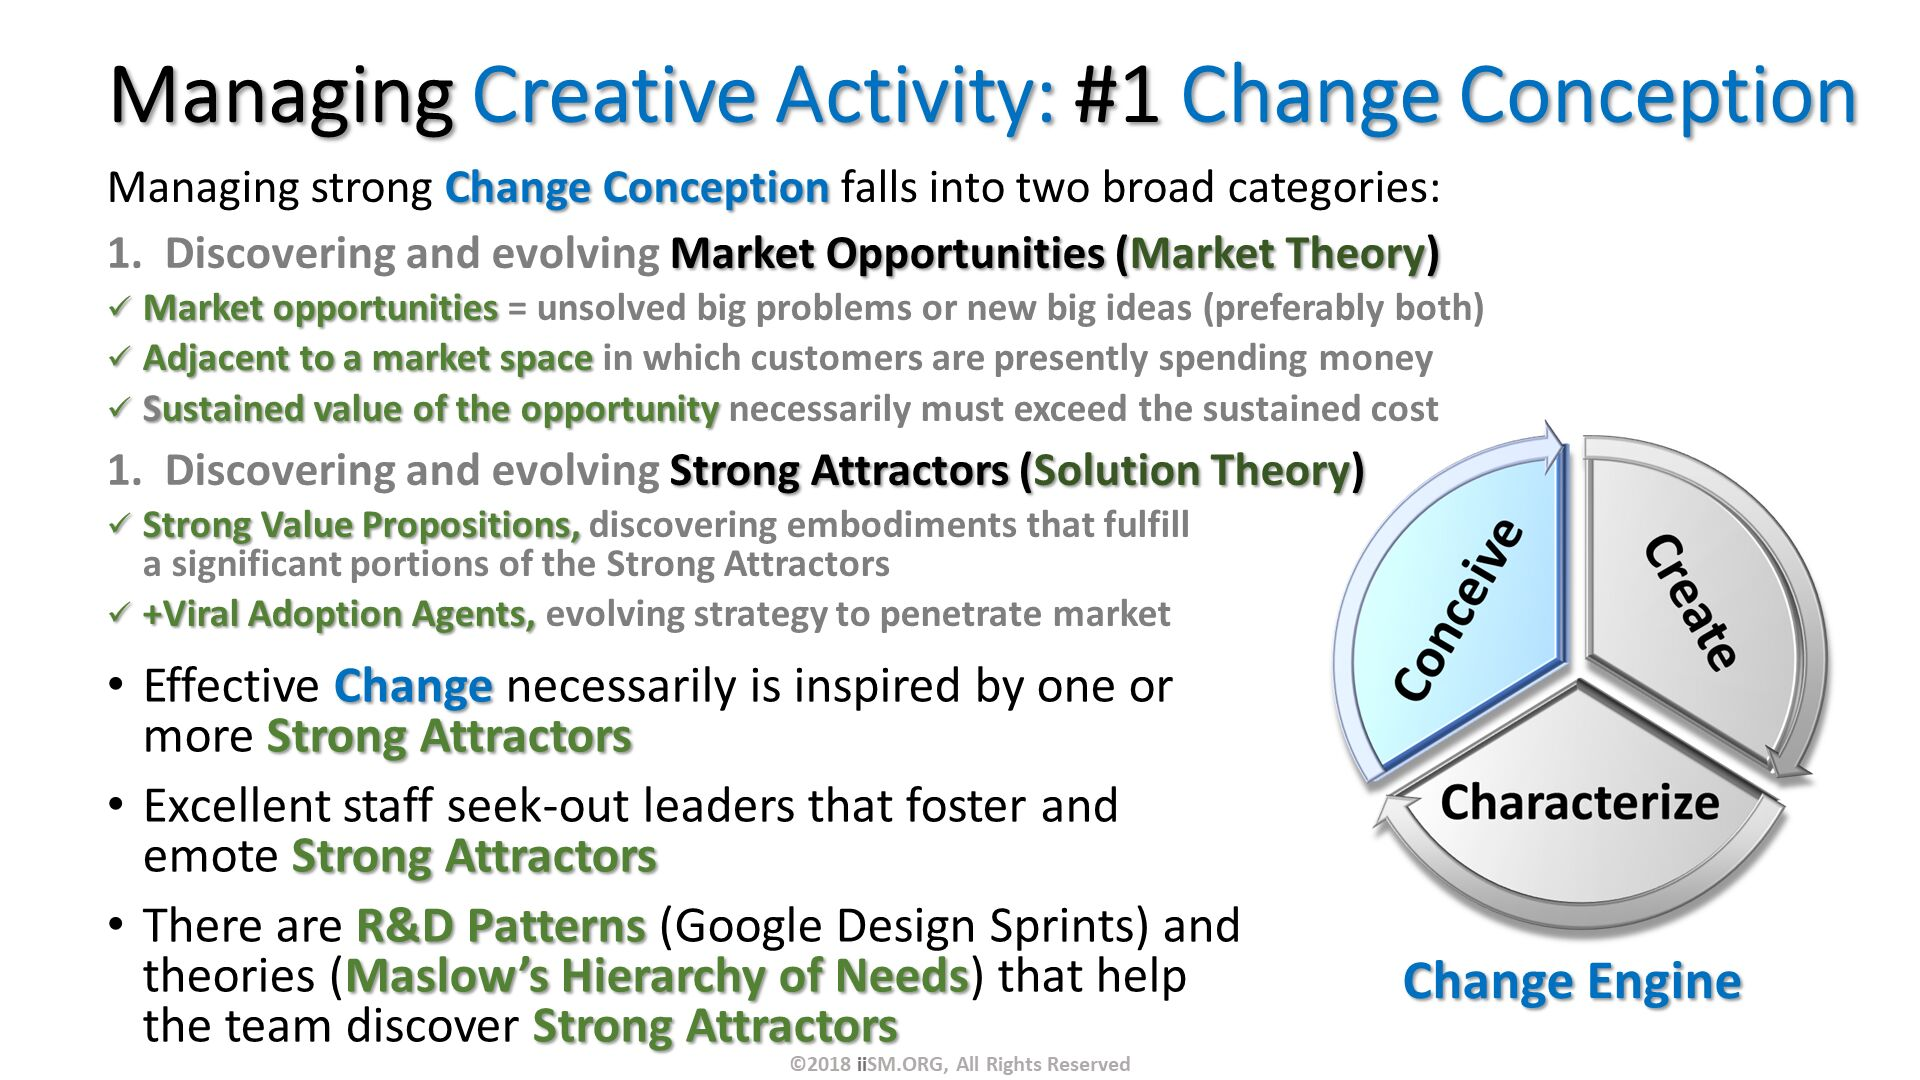 Managing Creative Activity: #1 Change Conception. Managing strong Change Conception falls into two broad categories: Discovering and evolving Market Opportunities (Market Theory) Market opportunities = unsolved big problems or new big ideas (preferably both) Adjacent to a market space in which customers are presently spending money Sustained value of the opportunity necessarily must exceed the sustained cost  Discovering and evolving Strong Attractors (Solution Theory) Strong Value Propositions, discovering embodiments that fulfill a significant portions of the Strong Attractors +Viral Adoption Agents, evolving strategy to penetrate market. Effective Change necessarily is inspired by one or more Strong Attractors Excellent staff seek-out leaders that foster and emote Strong Attractors  There are R&D Patterns (Google Design Sprints) and theories (Maslow's Hierarchy of Needs) that help the team discover Strong Attractors . ©2018 iiSM.ORG, All Rights Reserved.